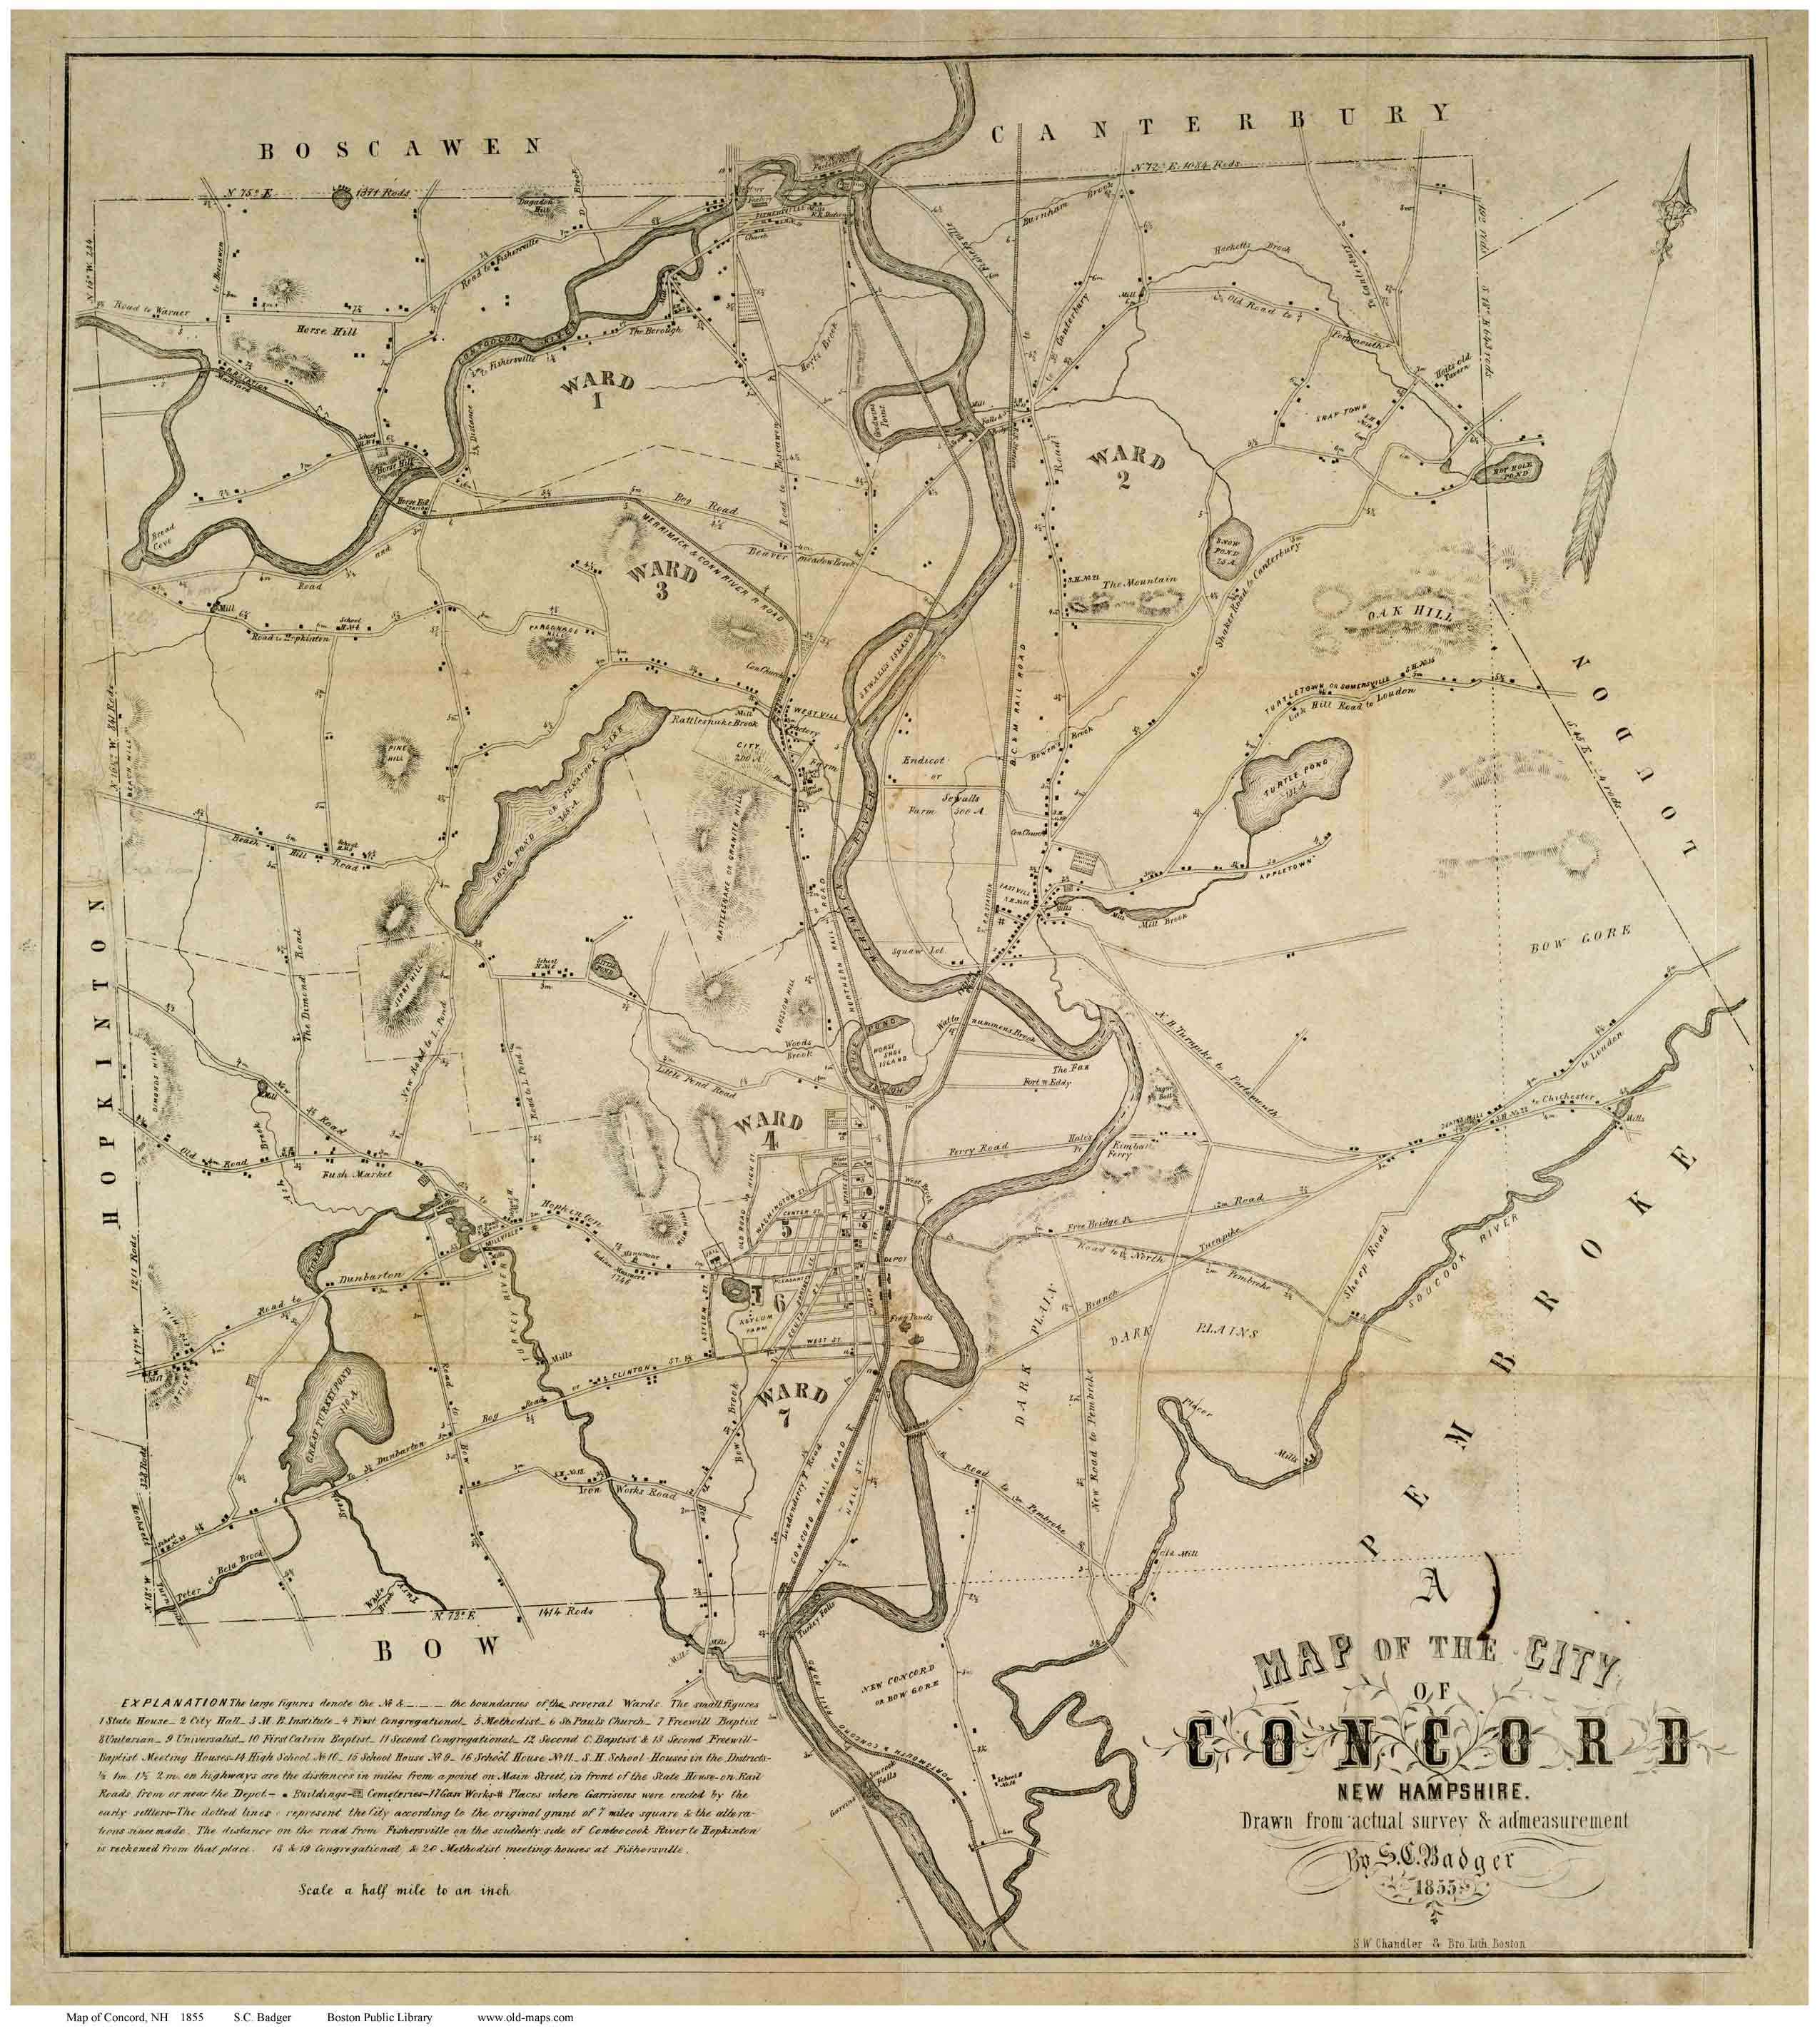 Old maps of Concord, NH